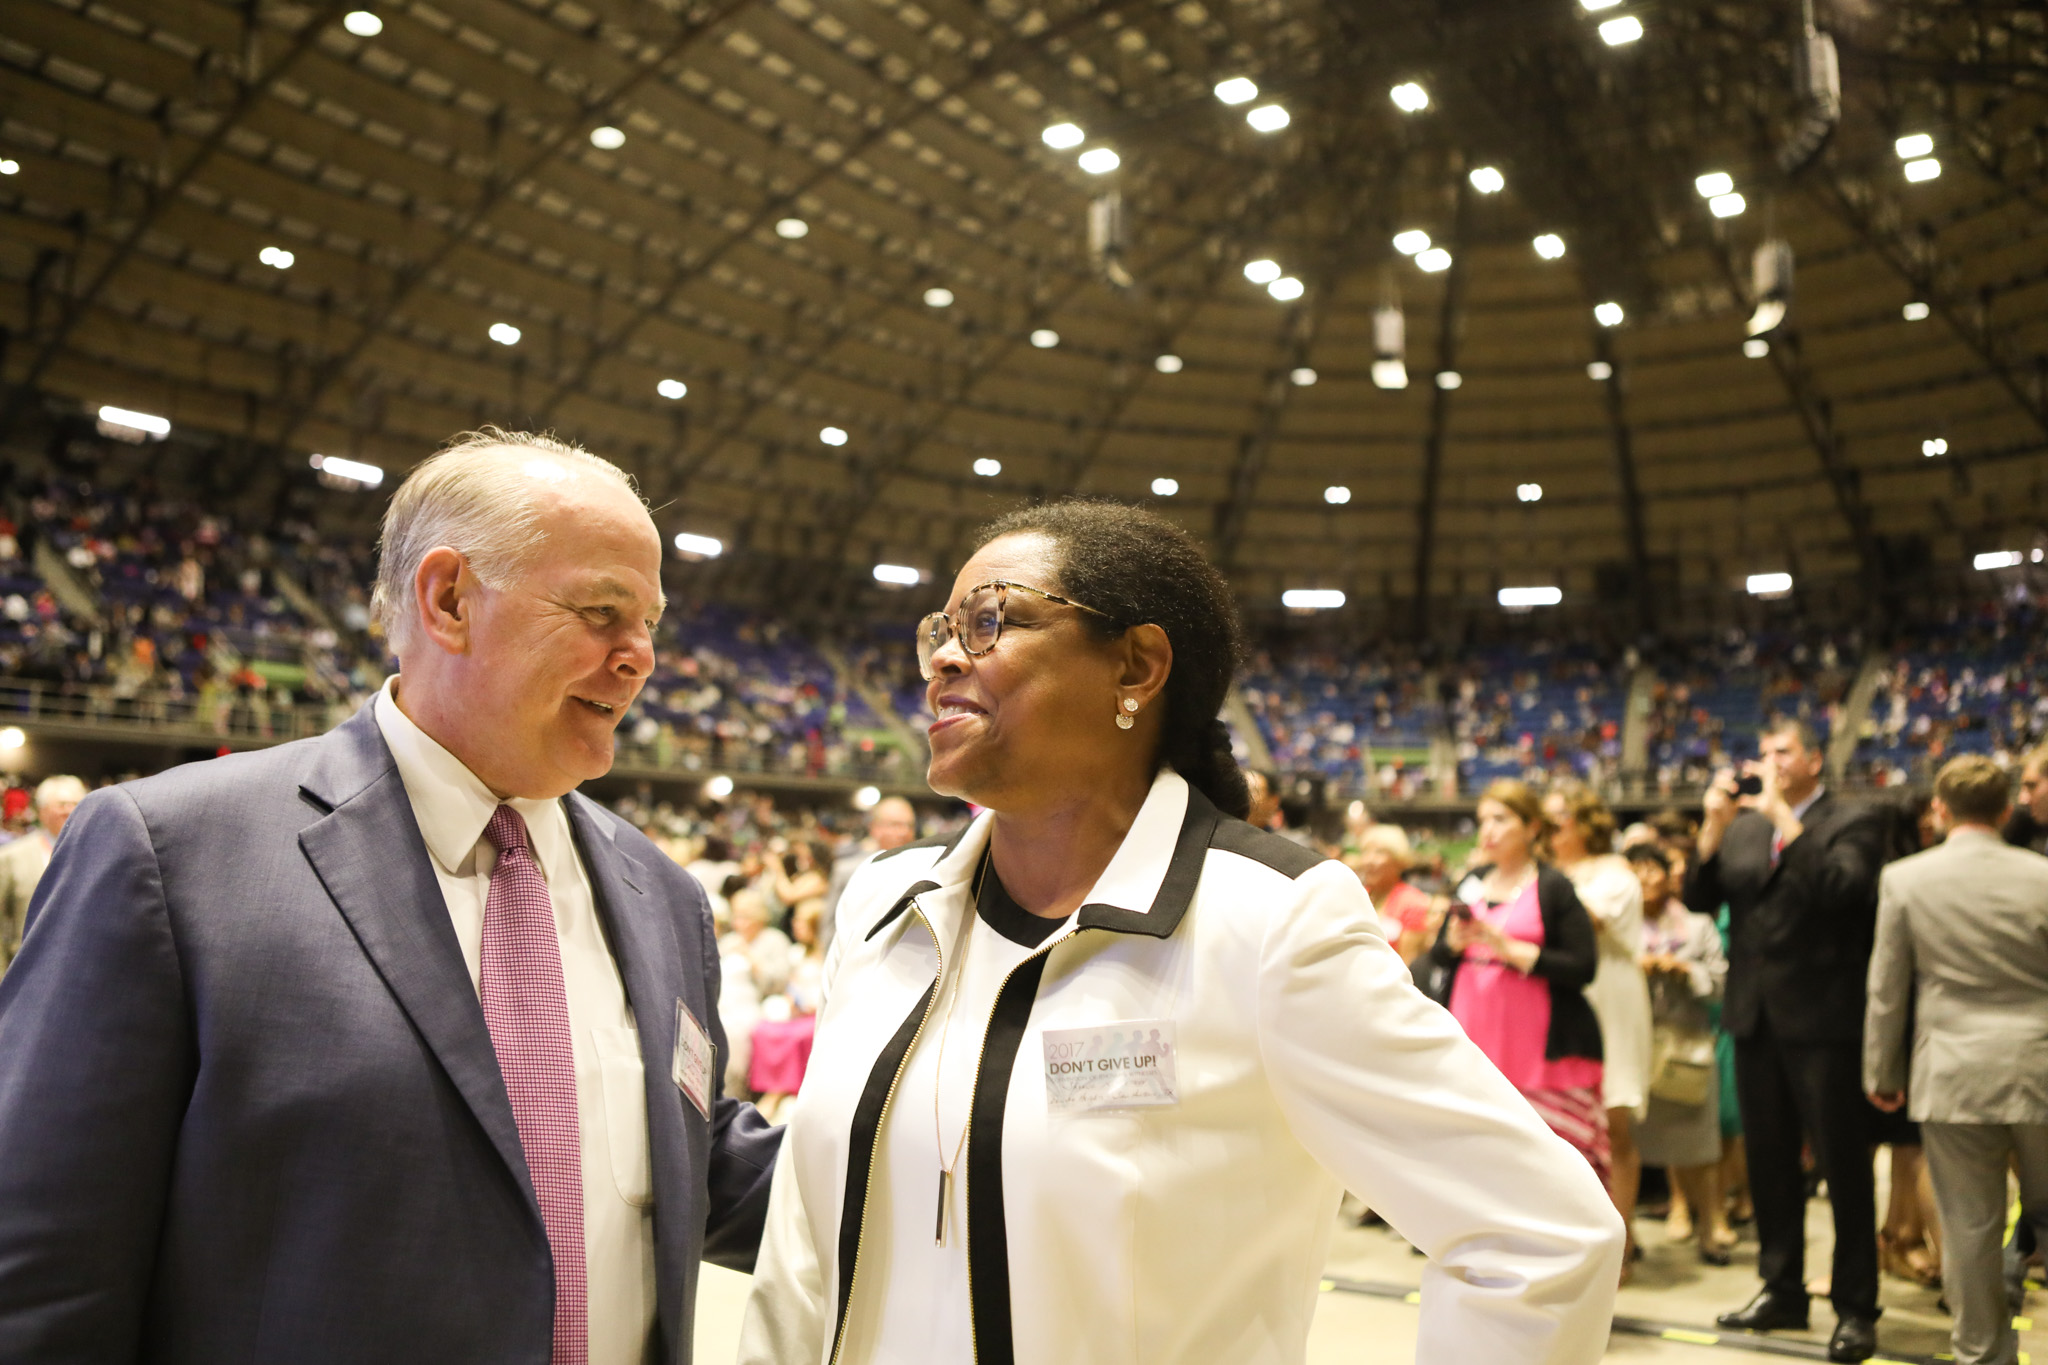 (From left) Michael Detroy and Sheena Detroy smile at one another during the 2017 convention of Jehovah's Witnesses in the Freeman Coliseum.